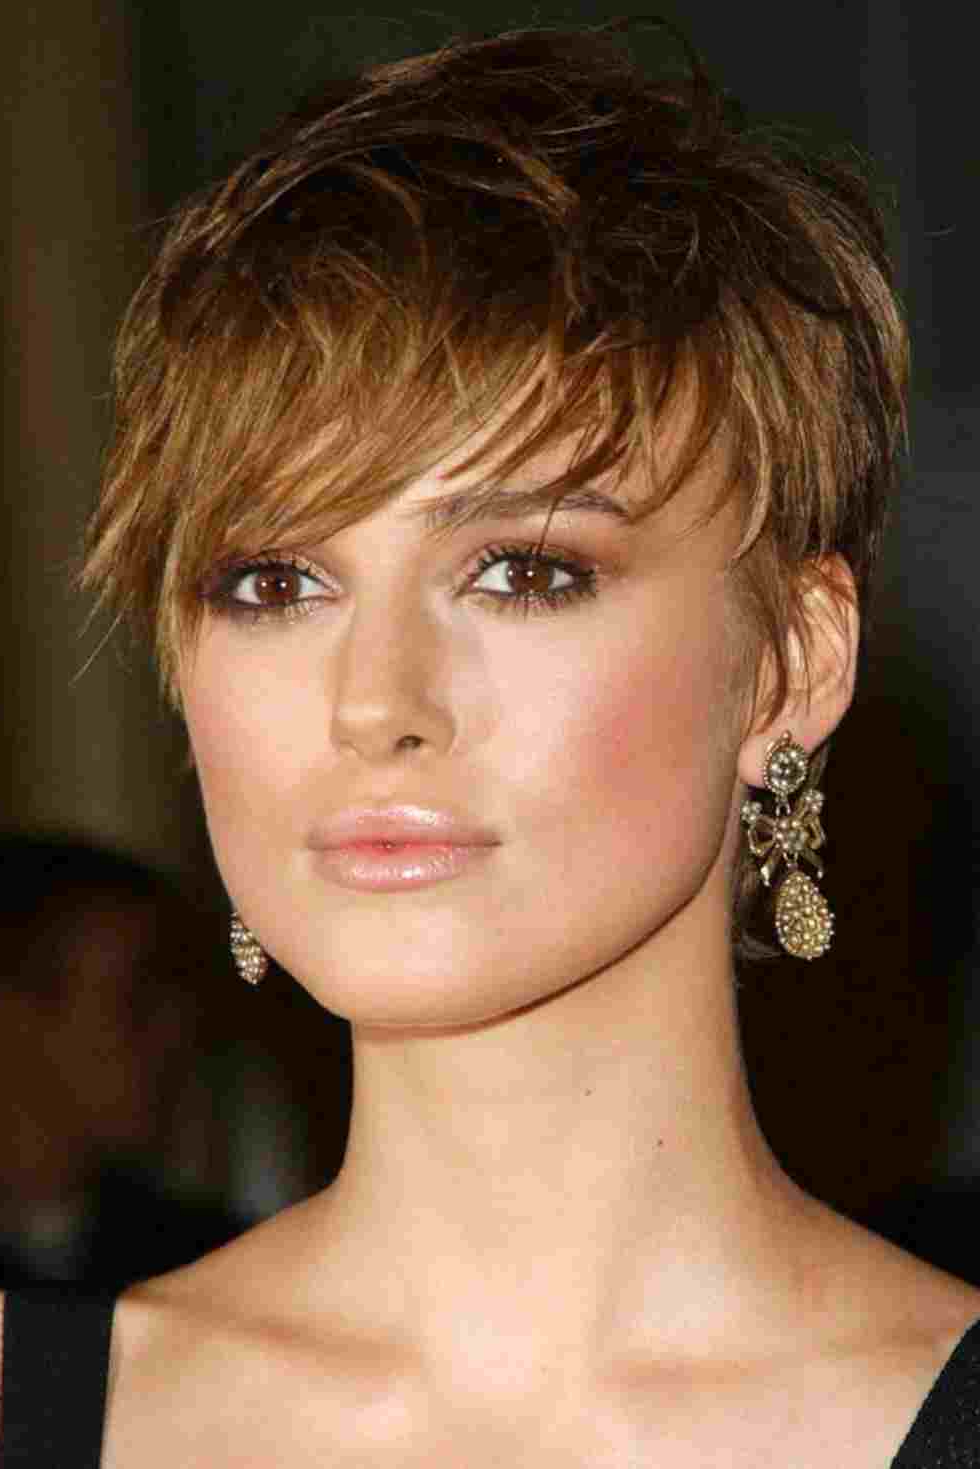 Inspirational Haircut Thin Dadyd Best Rhelitegrouphaircom Intended For Short Hairstyles For Thin Fine Hair (View 12 of 25)